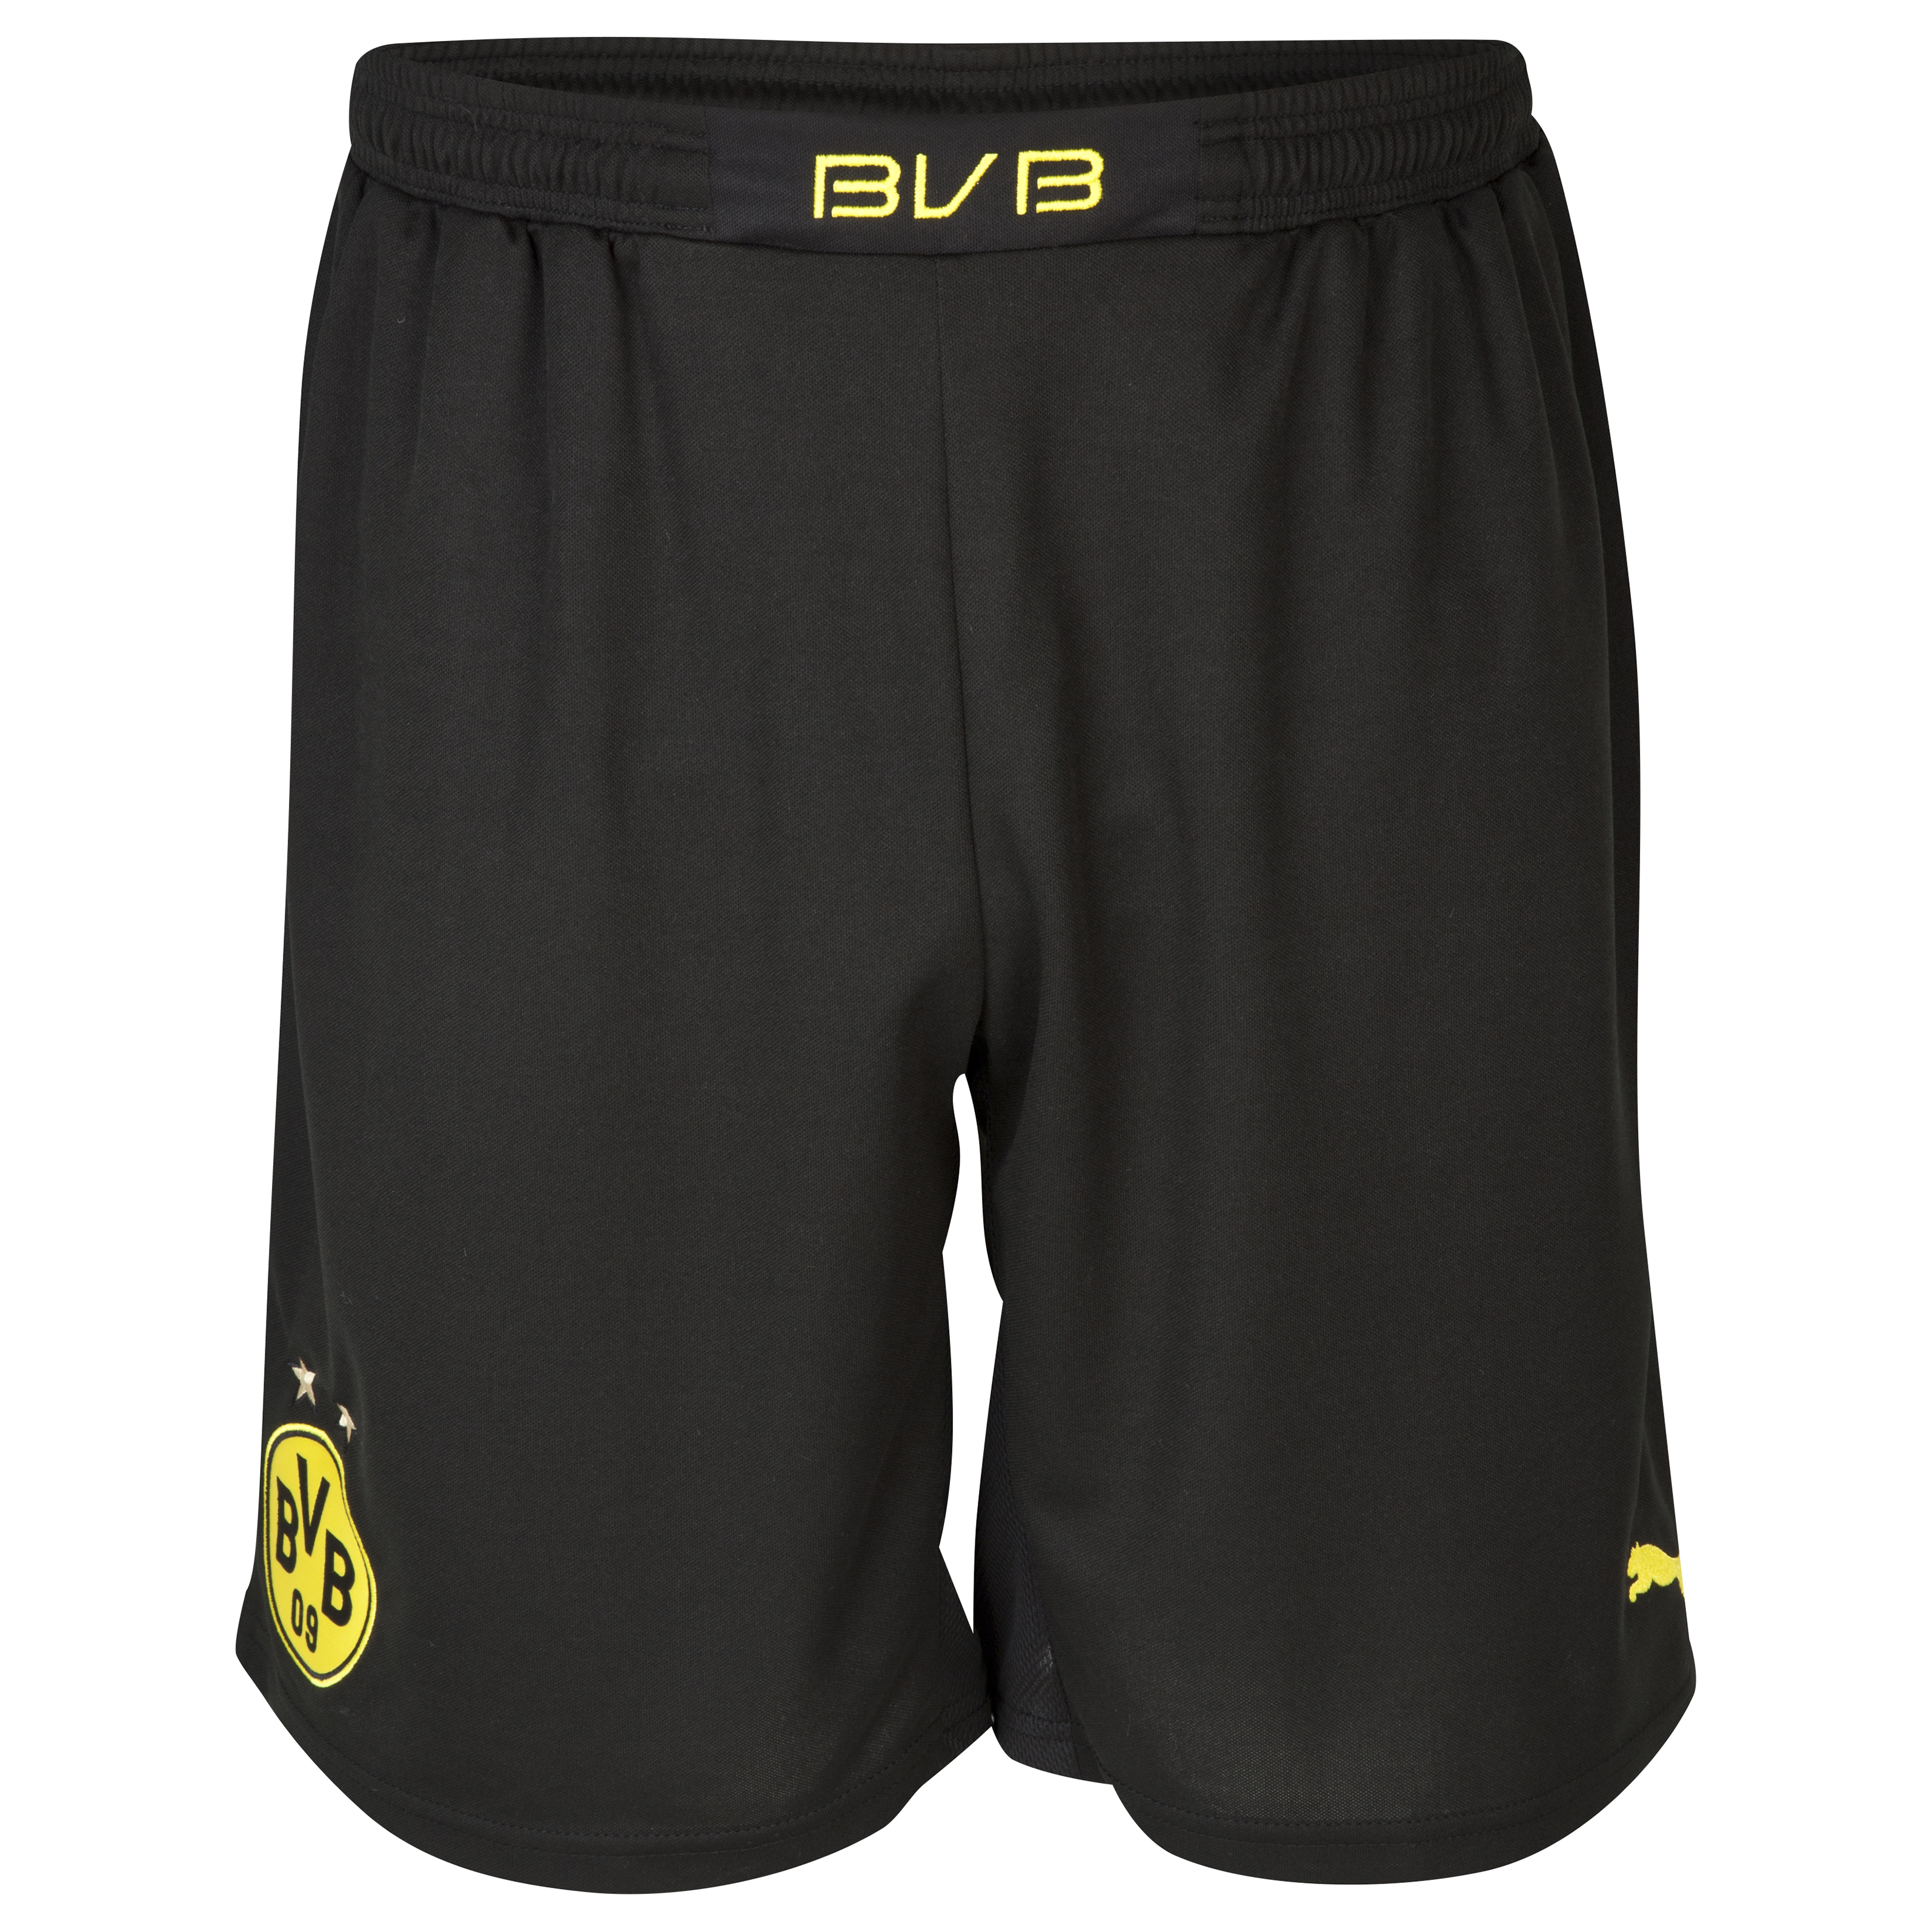 BVB Home Shorts 2013/14